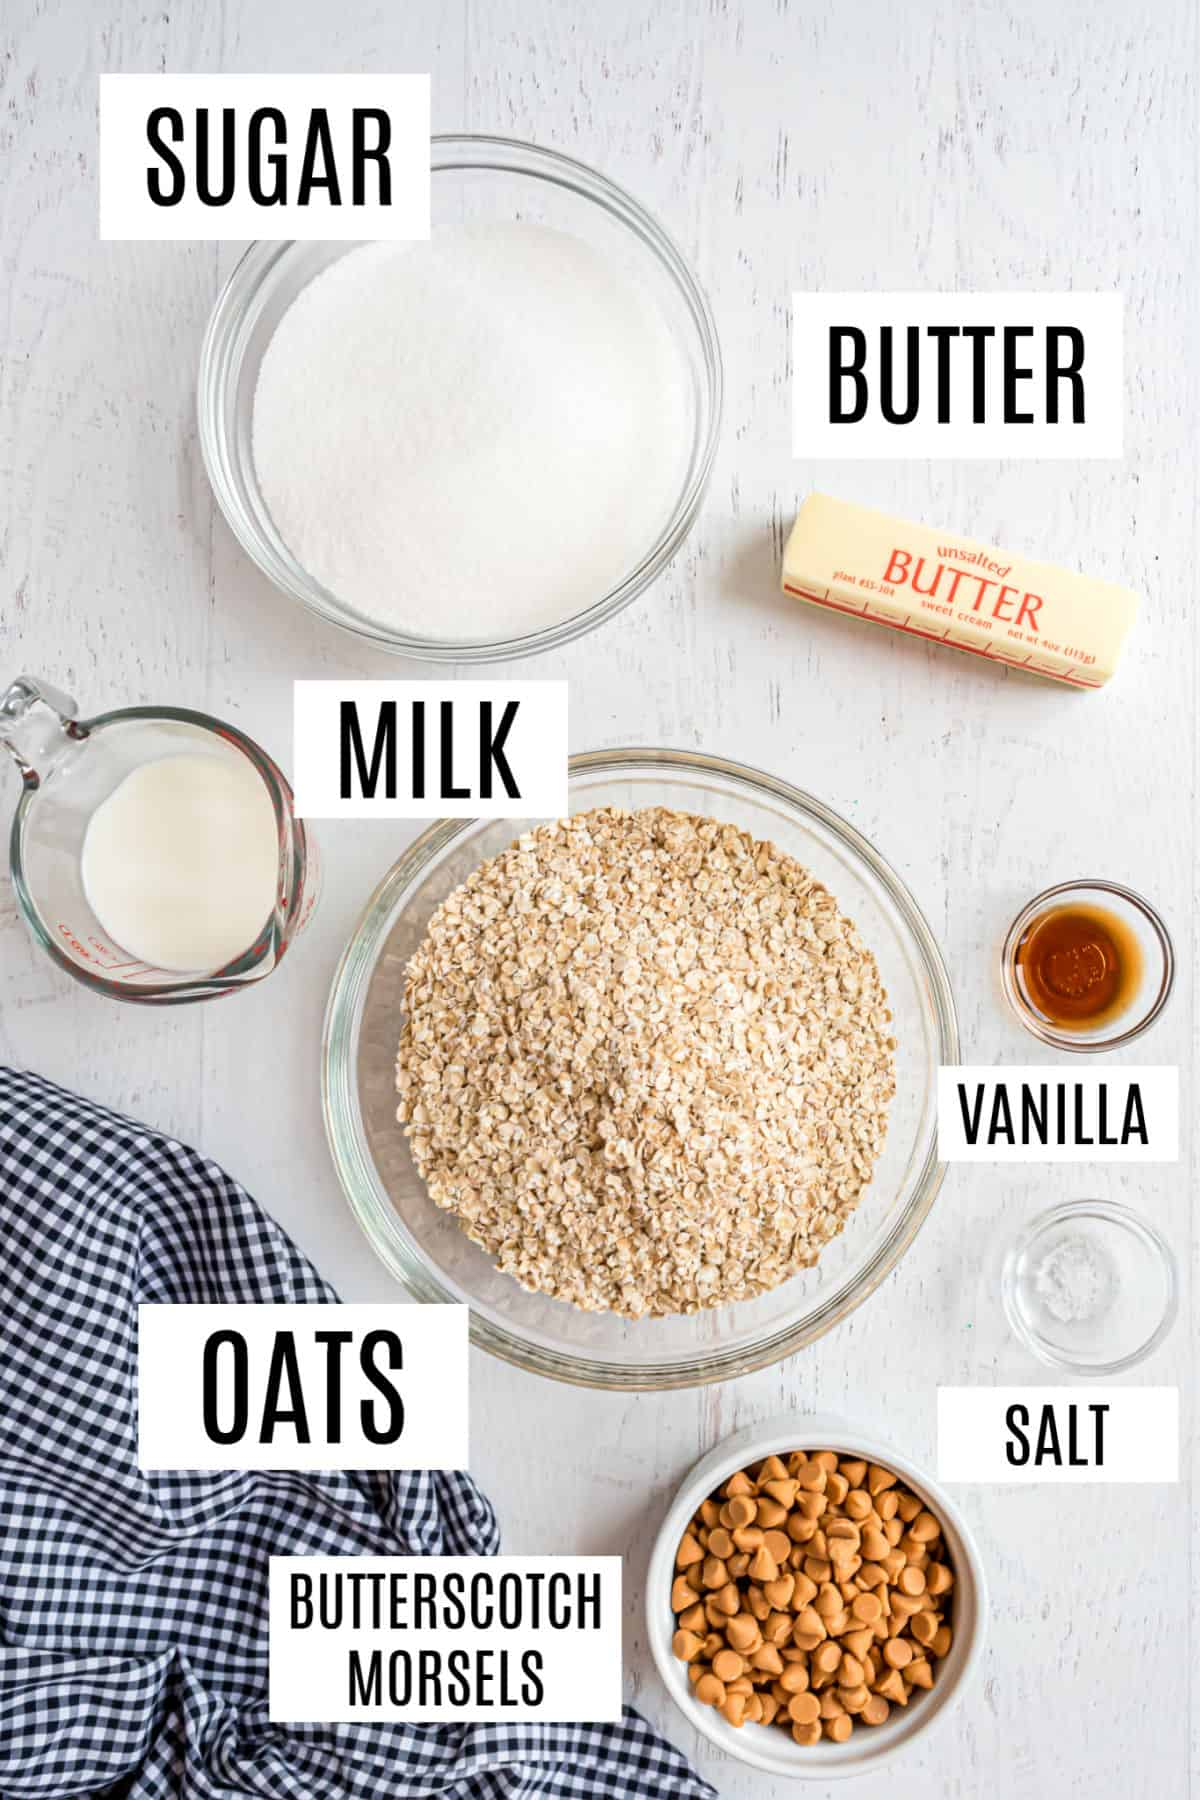 Ingredients needed to make no bake oatmeal butterscotch cookies.